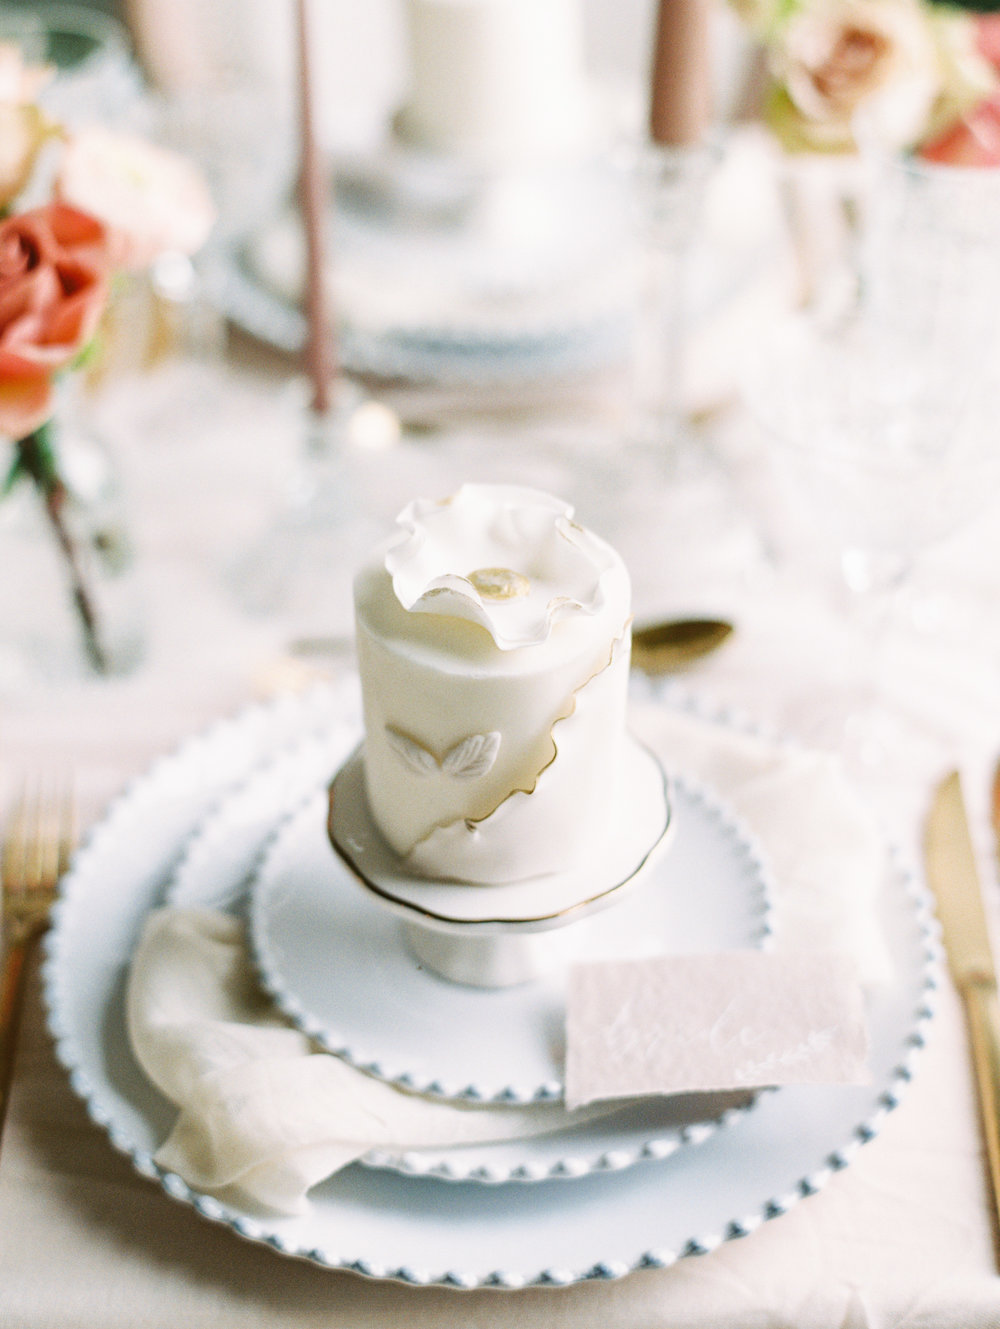 The Timeless Stylist-Elegant and Romantic Wedding Styling-Mini Cake Place Setting